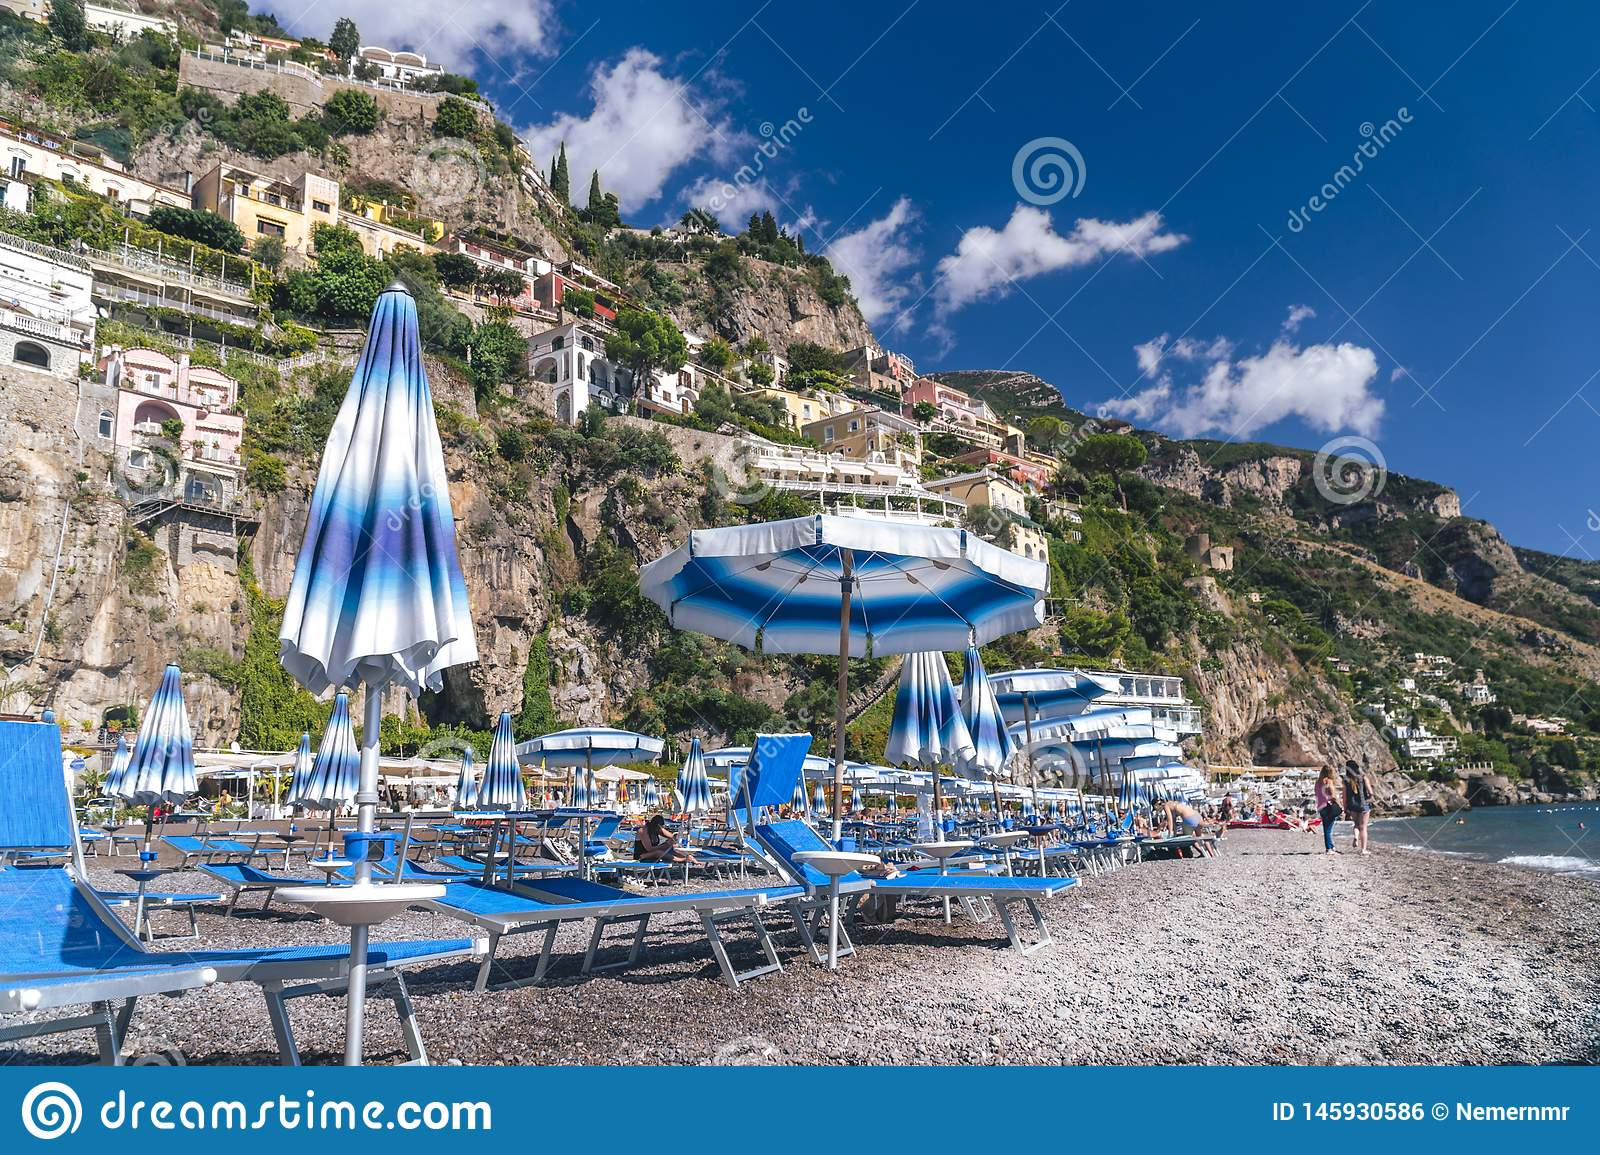 Positano, Italy - Beach with umbrellas, Amalfi coast, vacation concept